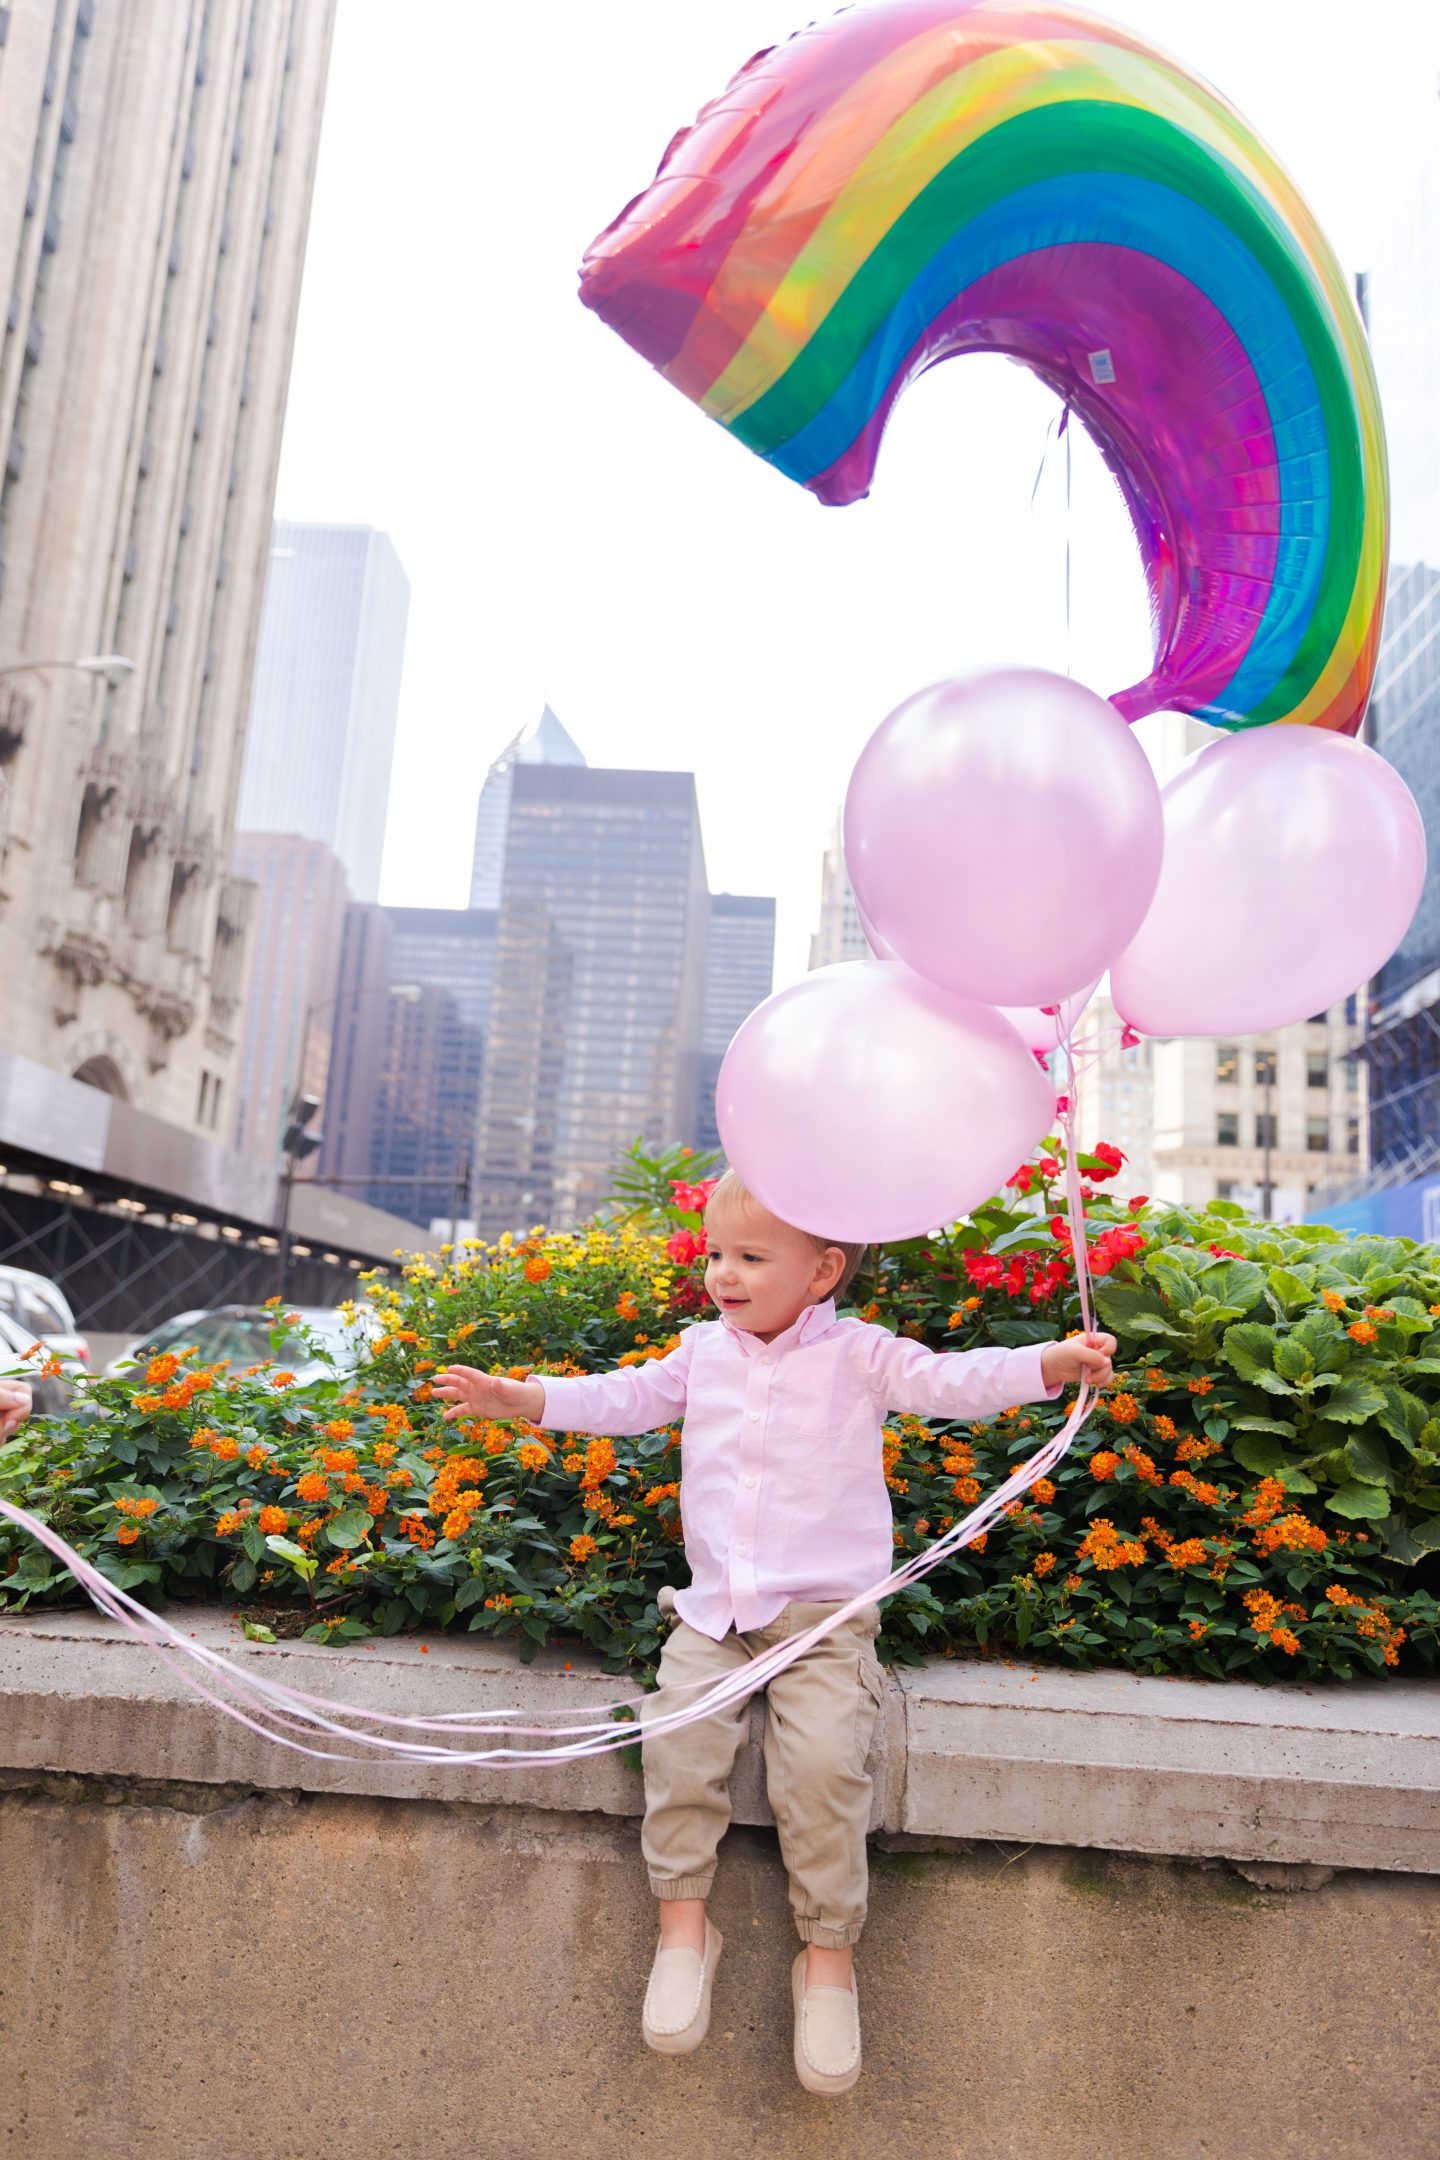 rainbow girl, pregnancy after loss, miscarriage, miscarriage awareness, miscarriage blog, infertility blog, motherhood, mom blogger, mommy blogger, Chicago photography, rainbow pregnancy